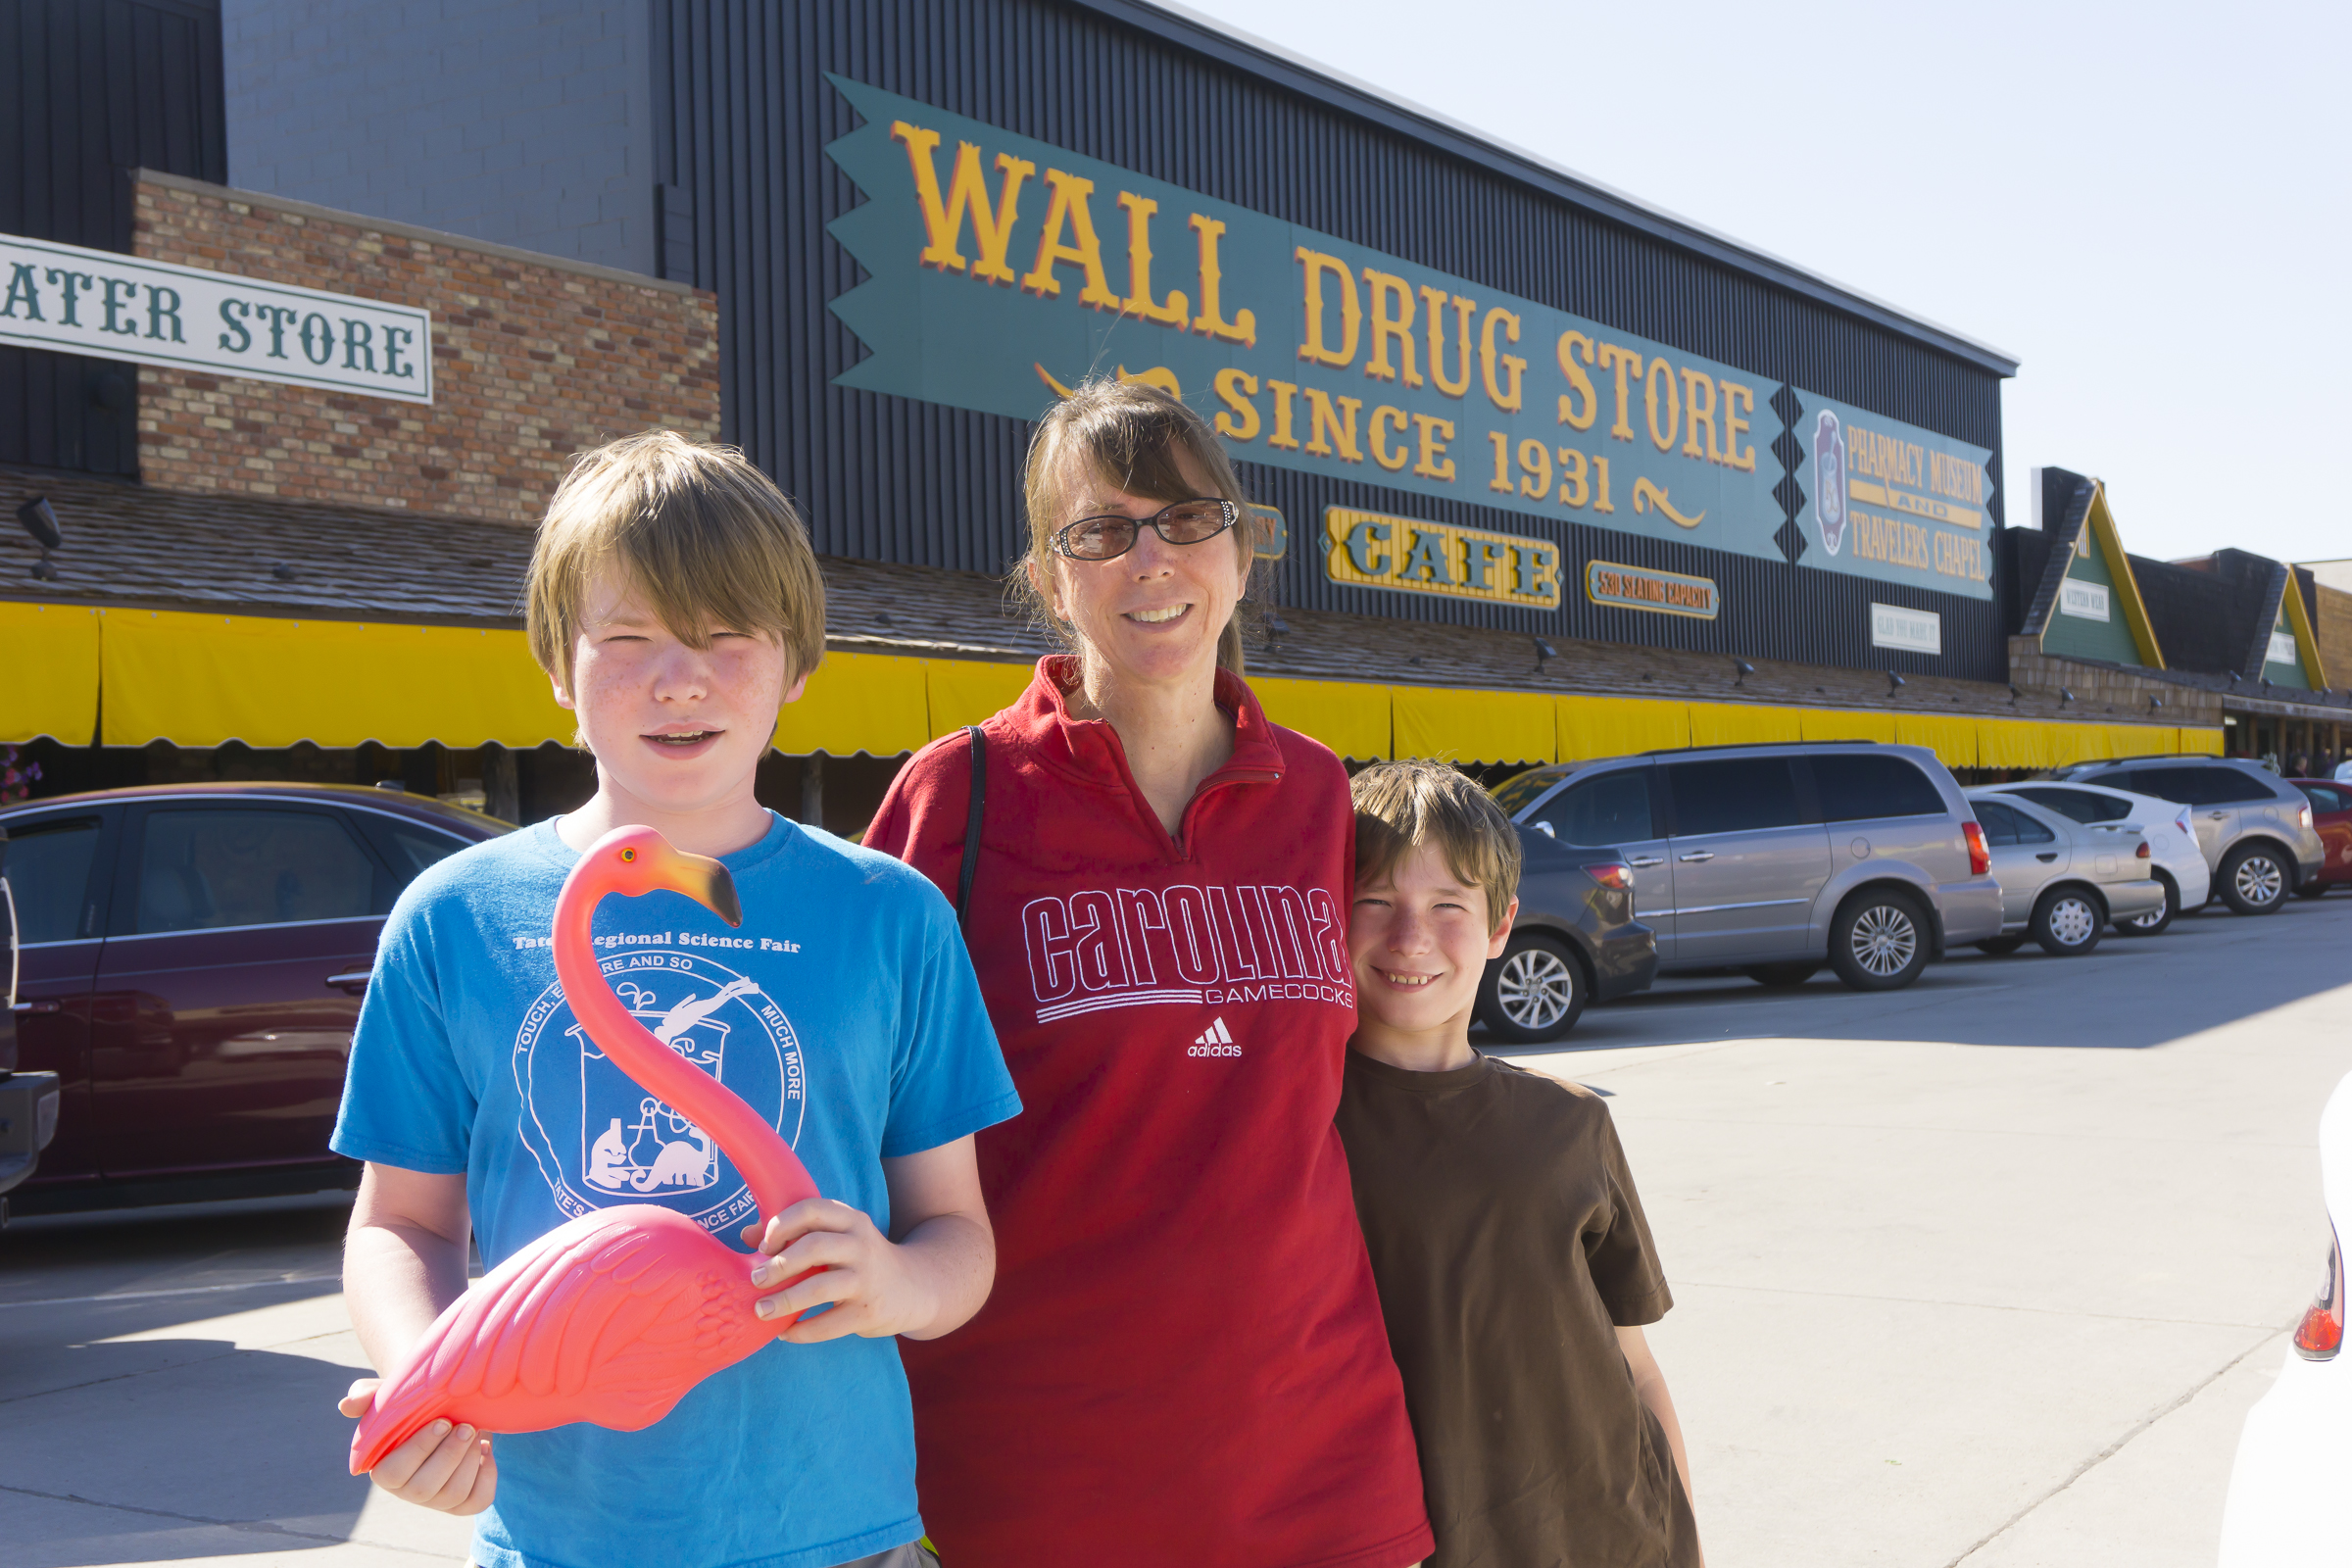 Visiting Wall Drug Store, Wall, SD